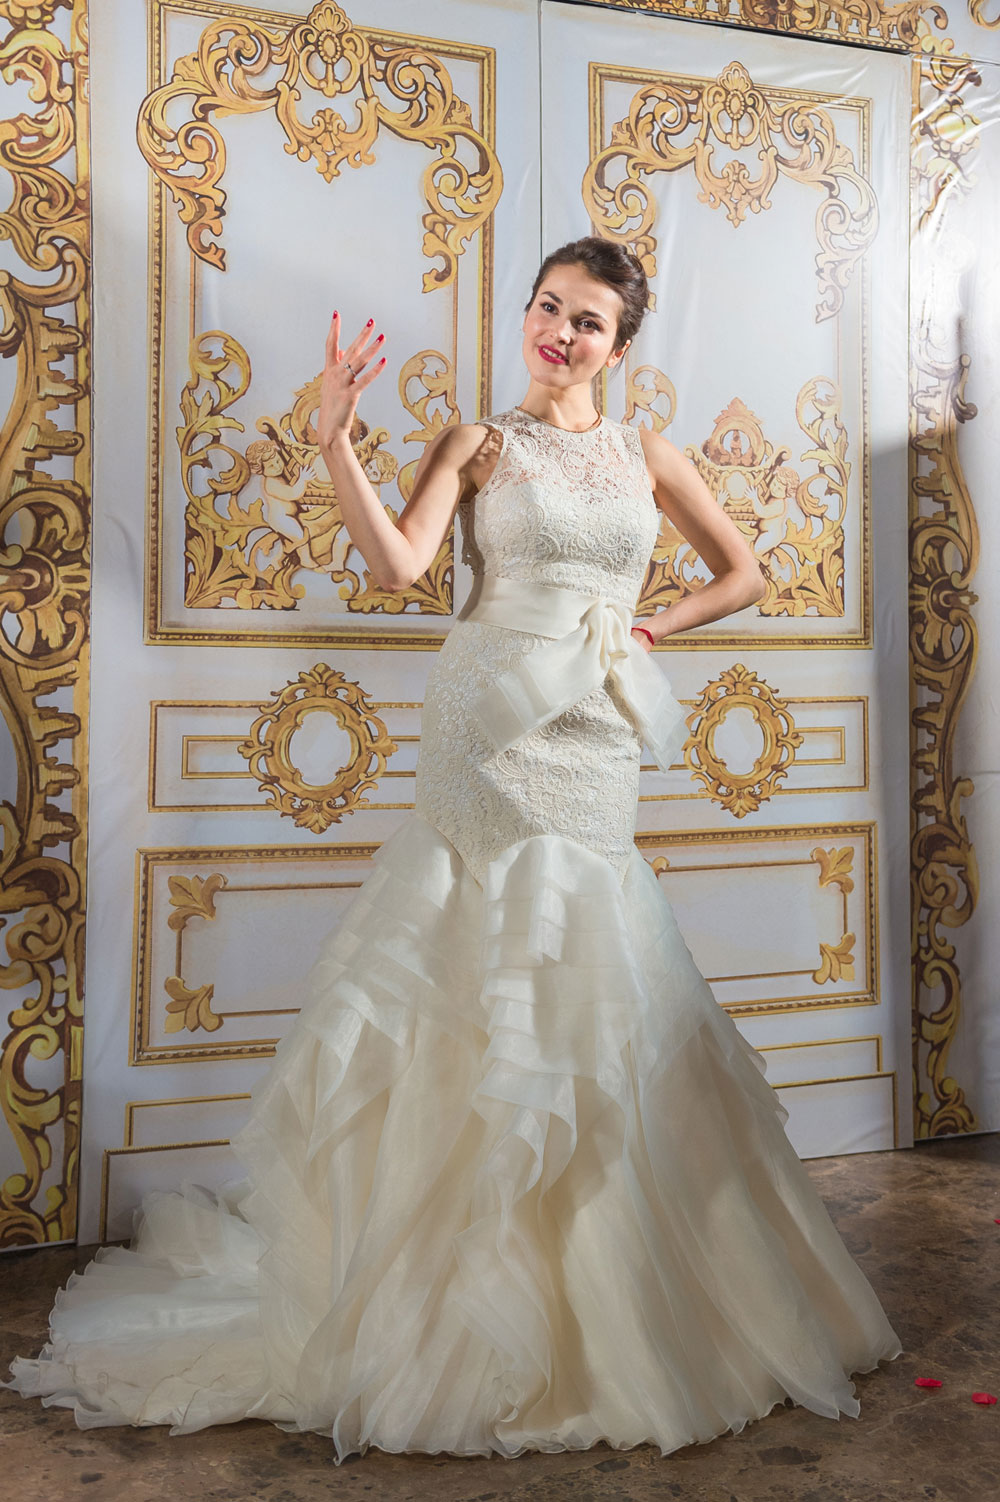 Sati Kazanova wearing a Vanilla wedding dress.